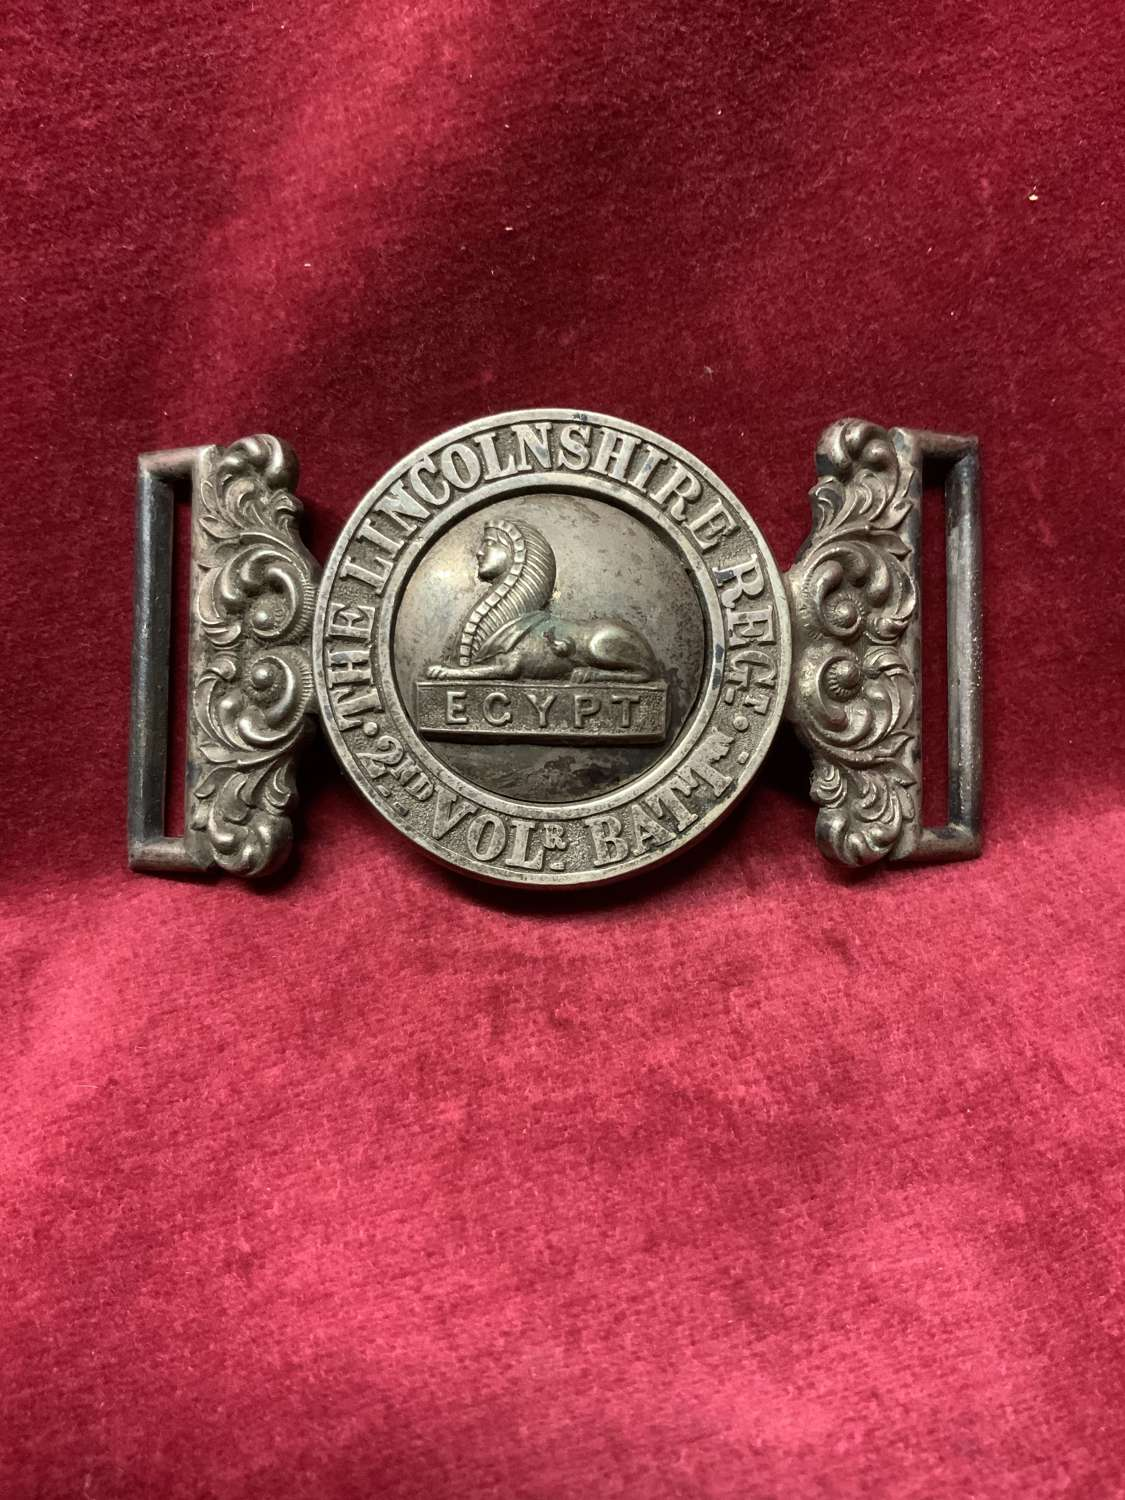 Lincolnshire Regiment, 2nd Volunteer Battalion Waist Belt Clasp.